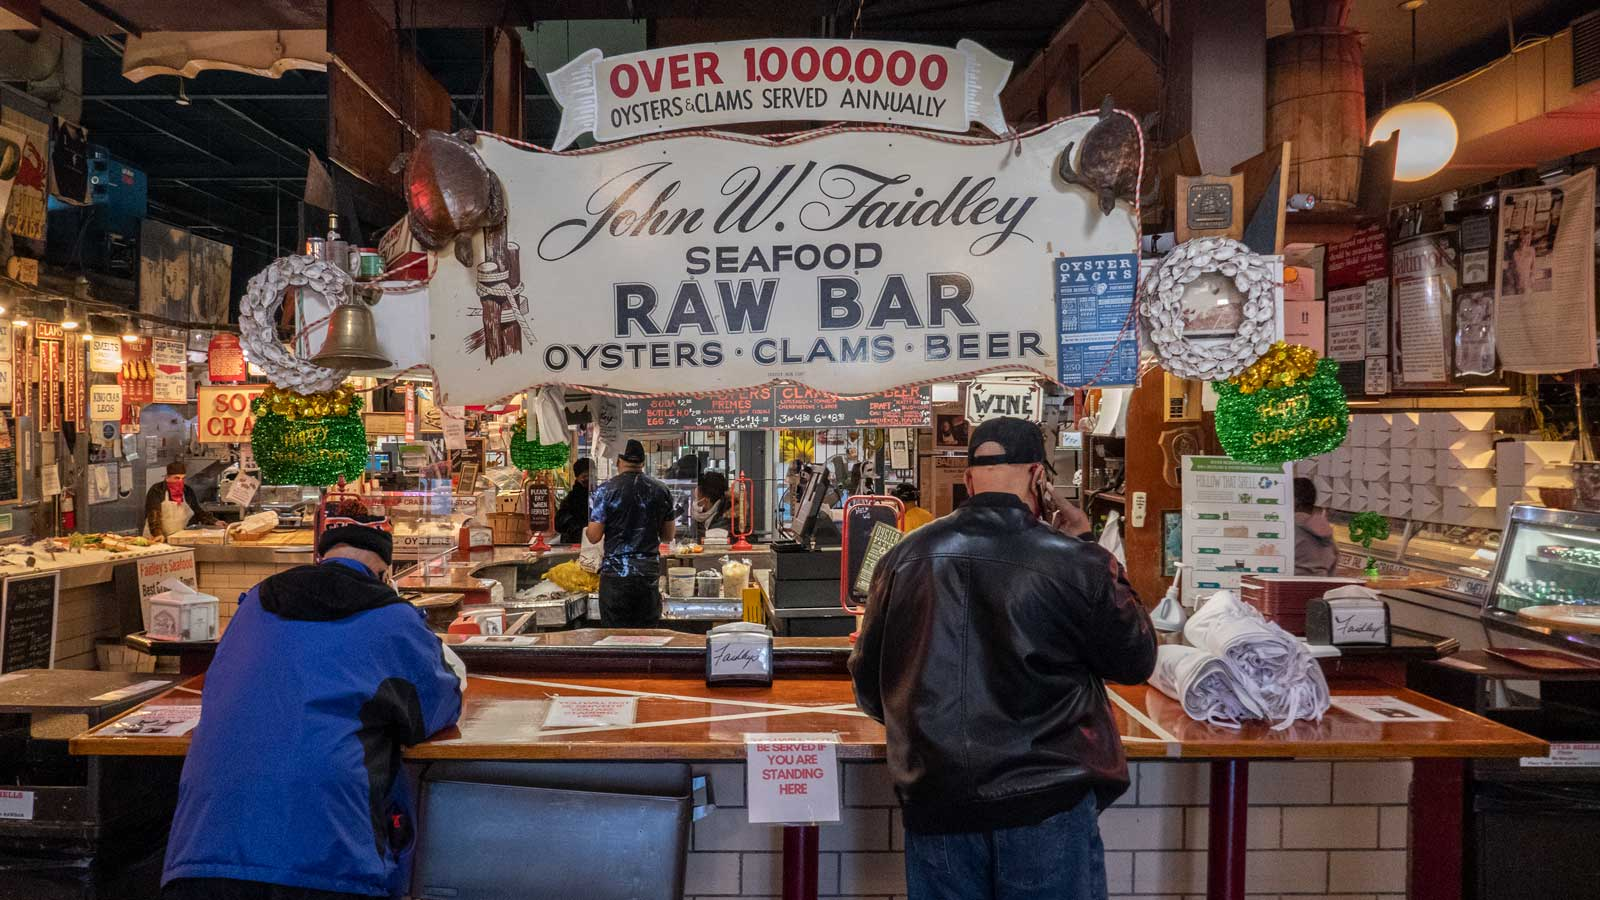 Faidley seafood raw bar Baltimore